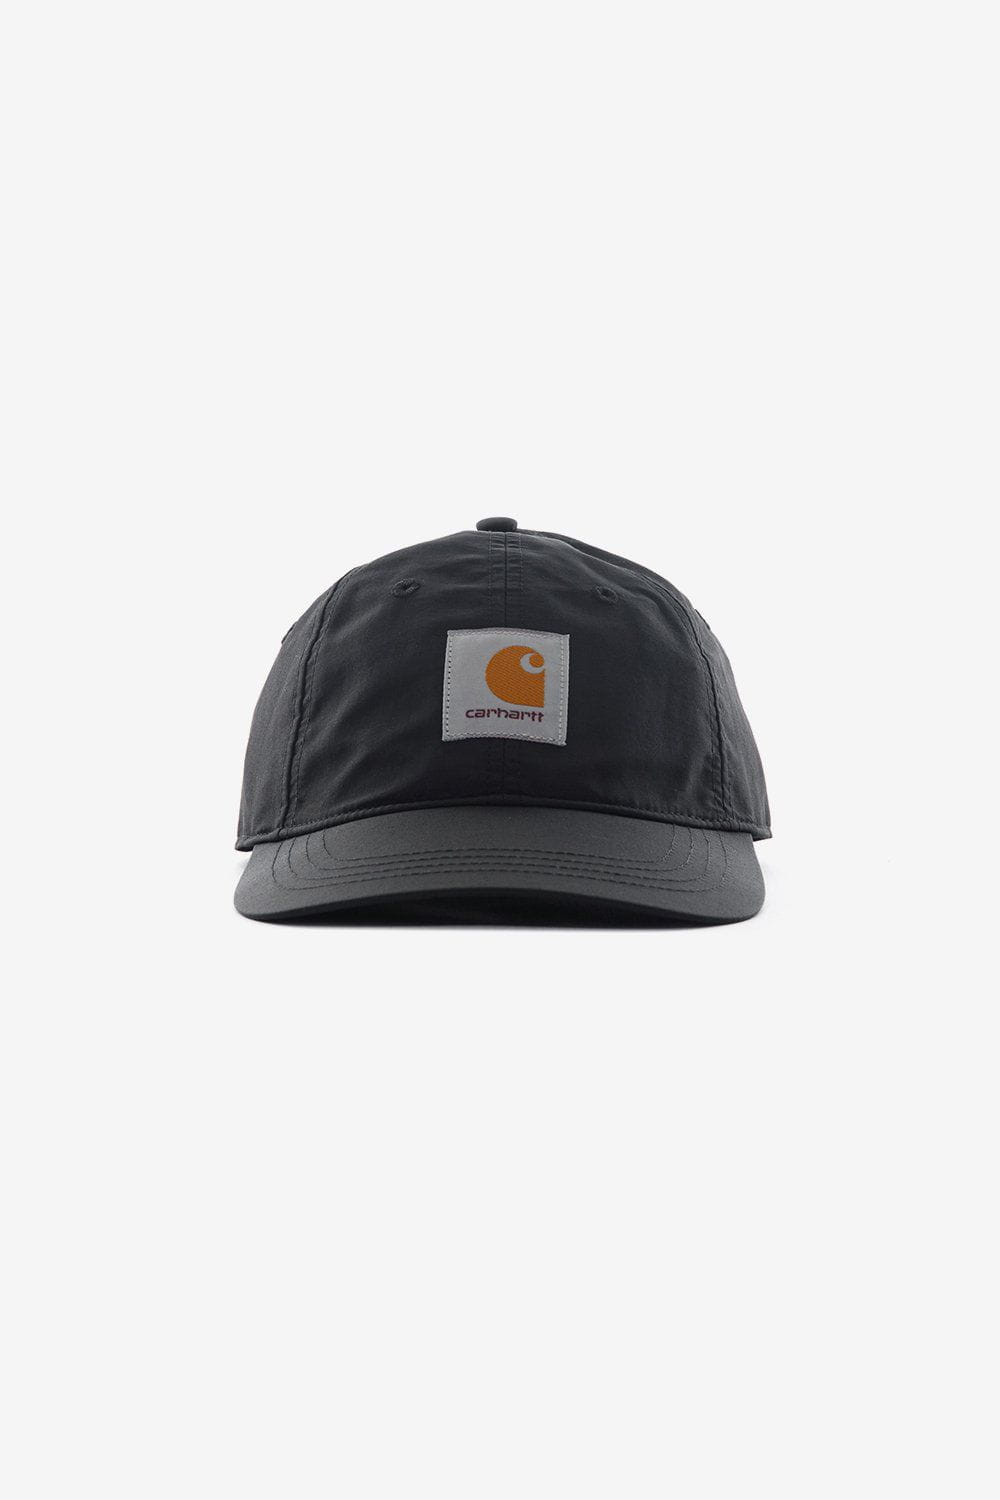 Carhartt WIP Apparel OS Square Label 6-Panel Cap